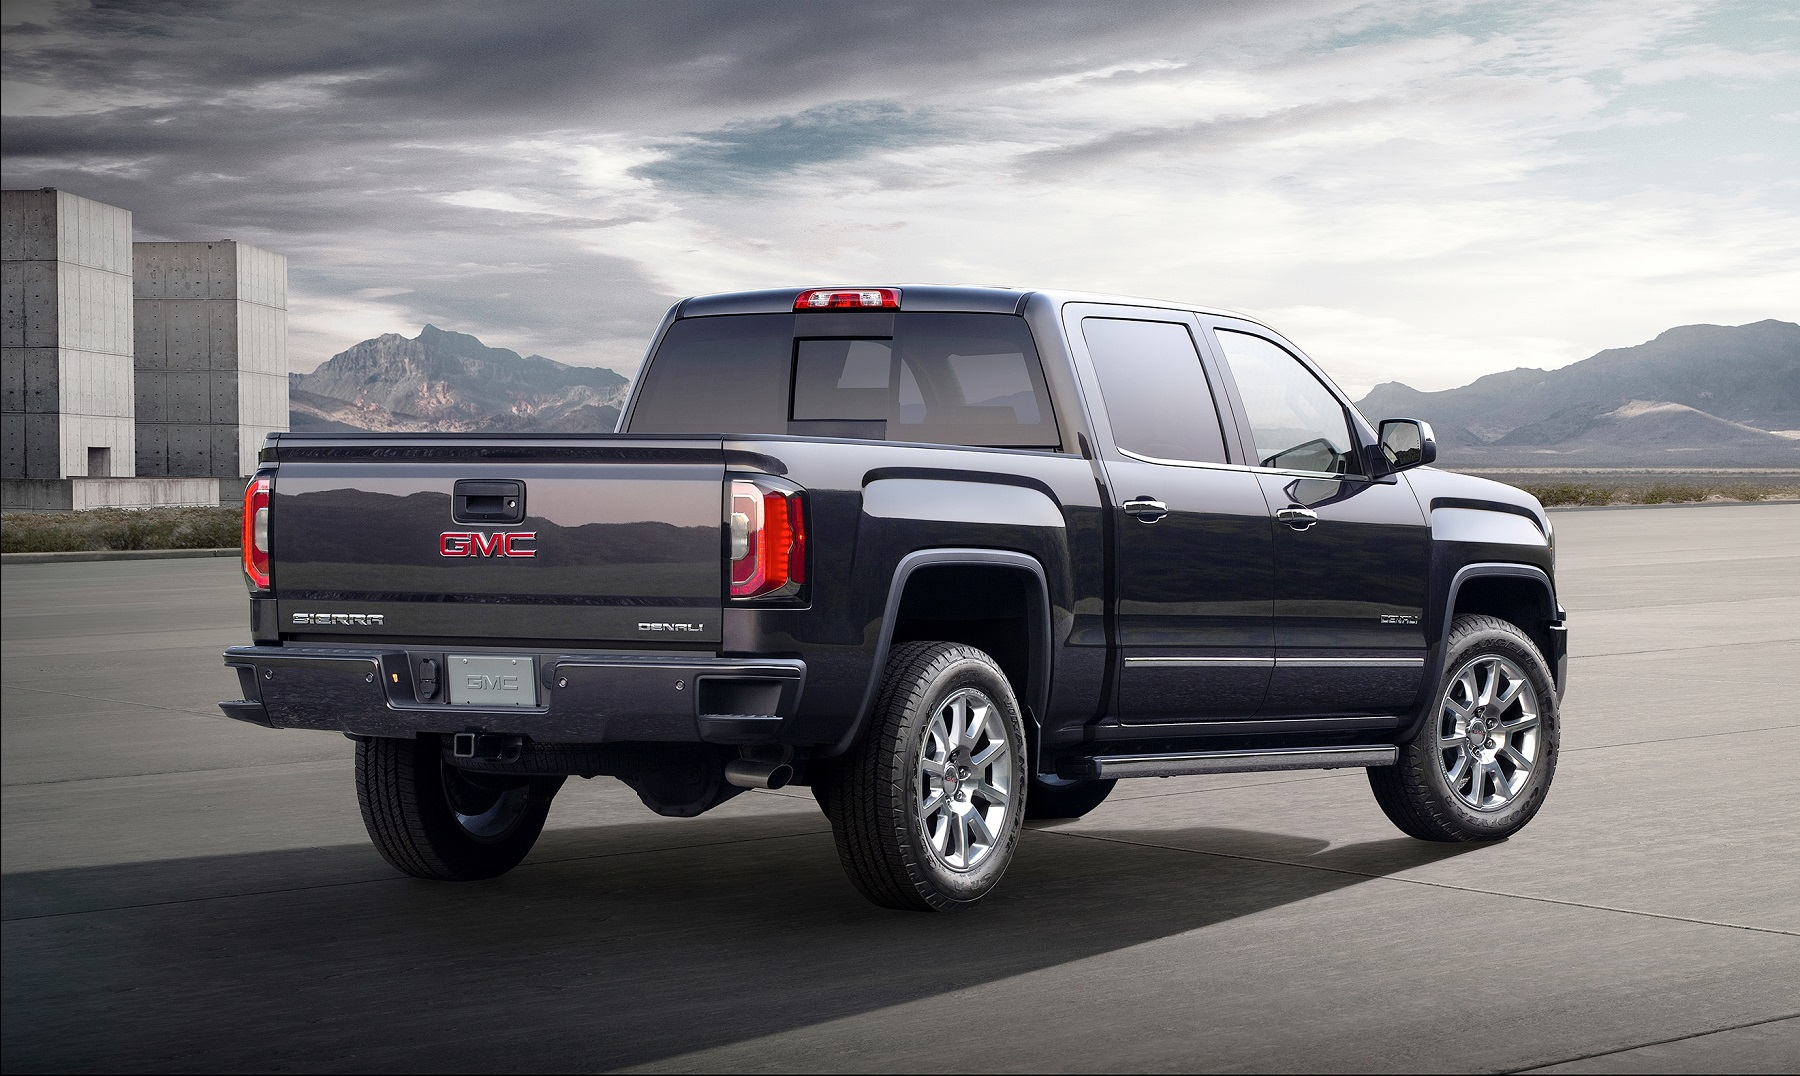 side sle show canyon review gmc profile news more in duramax motion pickup